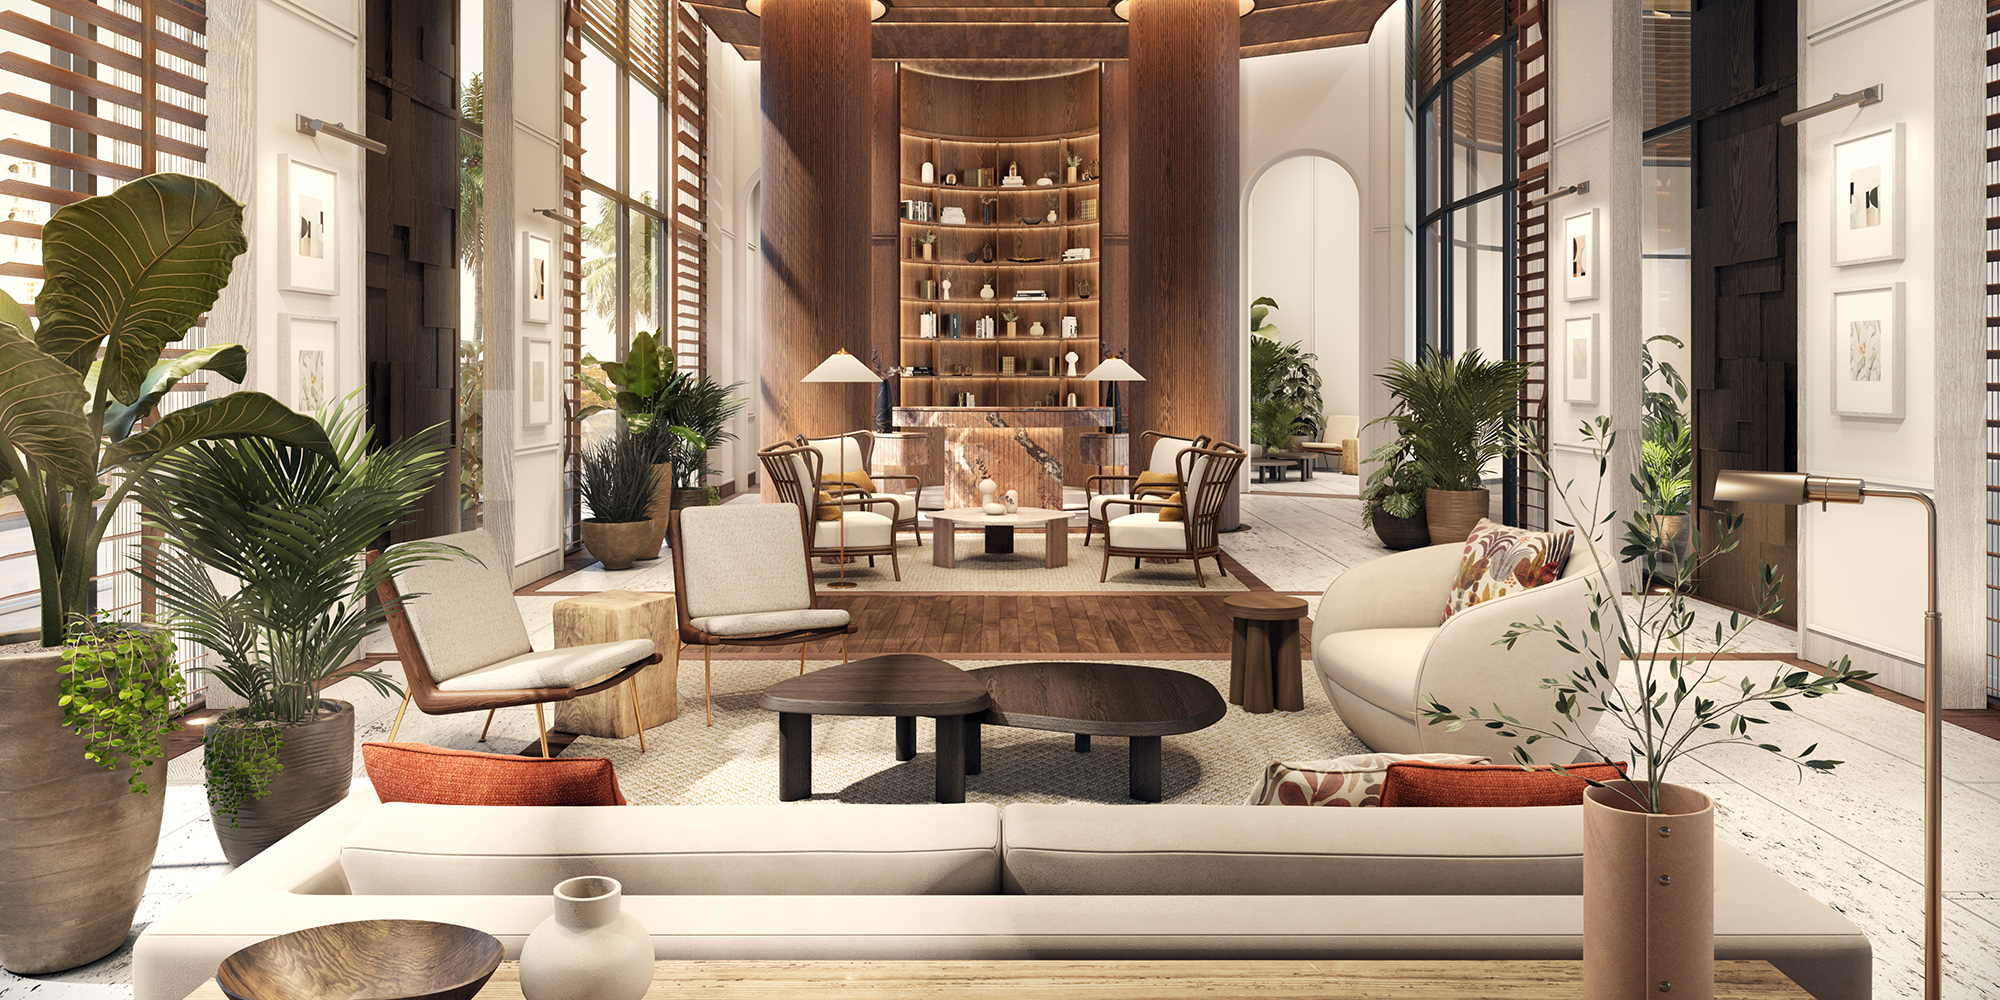 When California Modernism and coastal Florida intersect, Pendry Tampa Hotel & Residences shines as a comfortable retreat by the river.